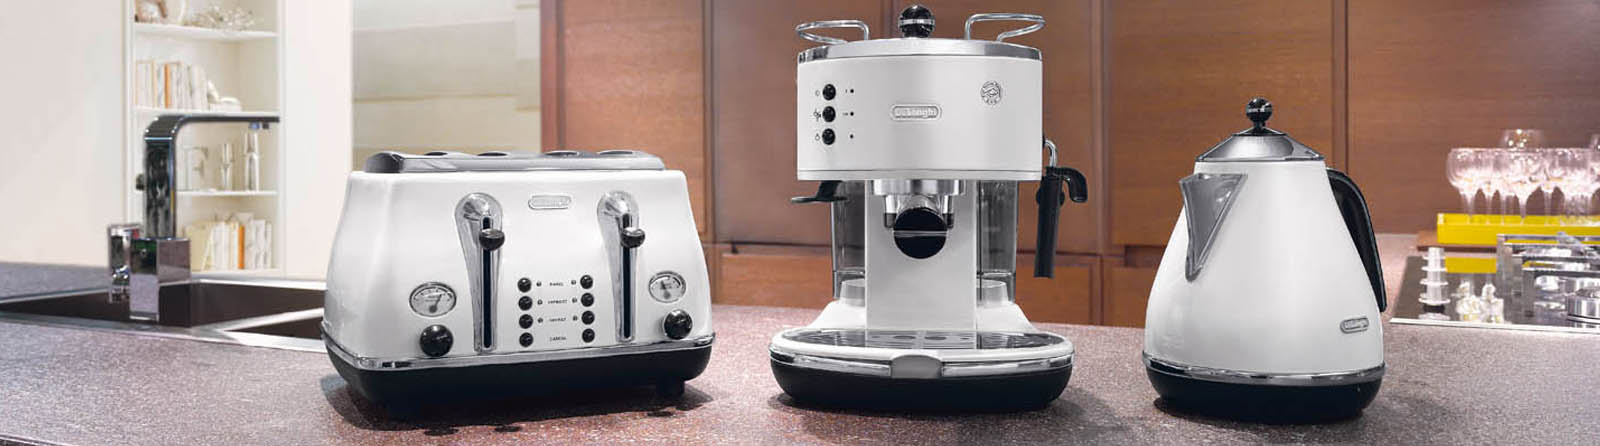 delonghi service products